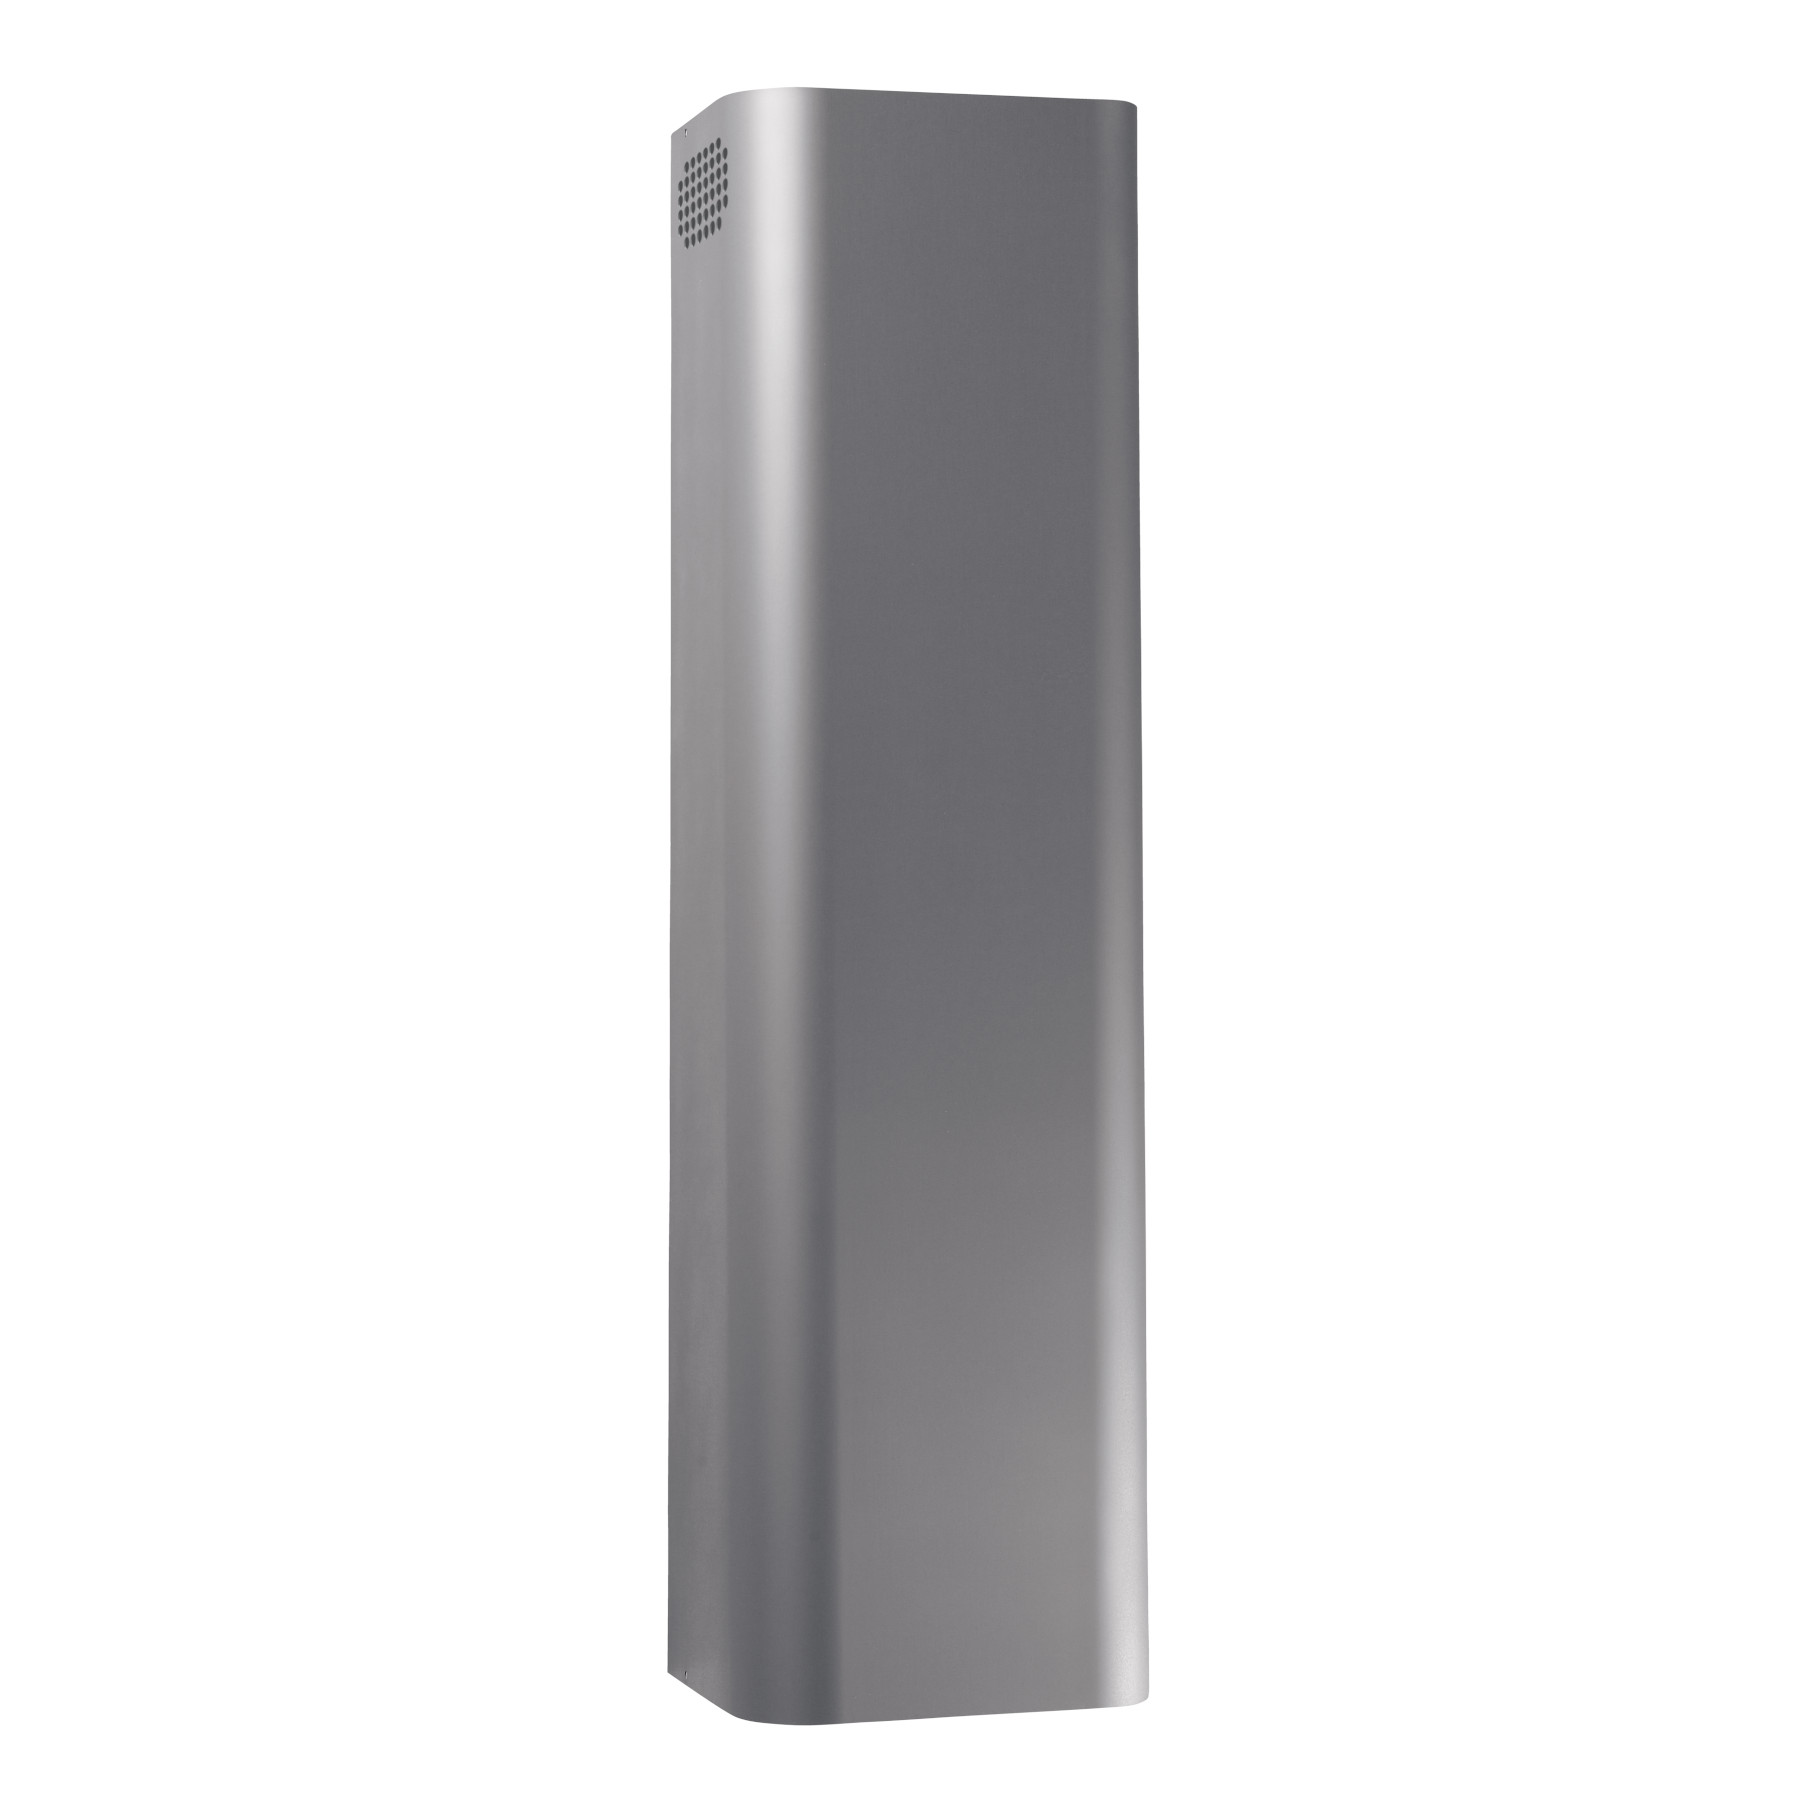 Optional Non-Ducted Flue Extension for E54000 in Stainless Steel